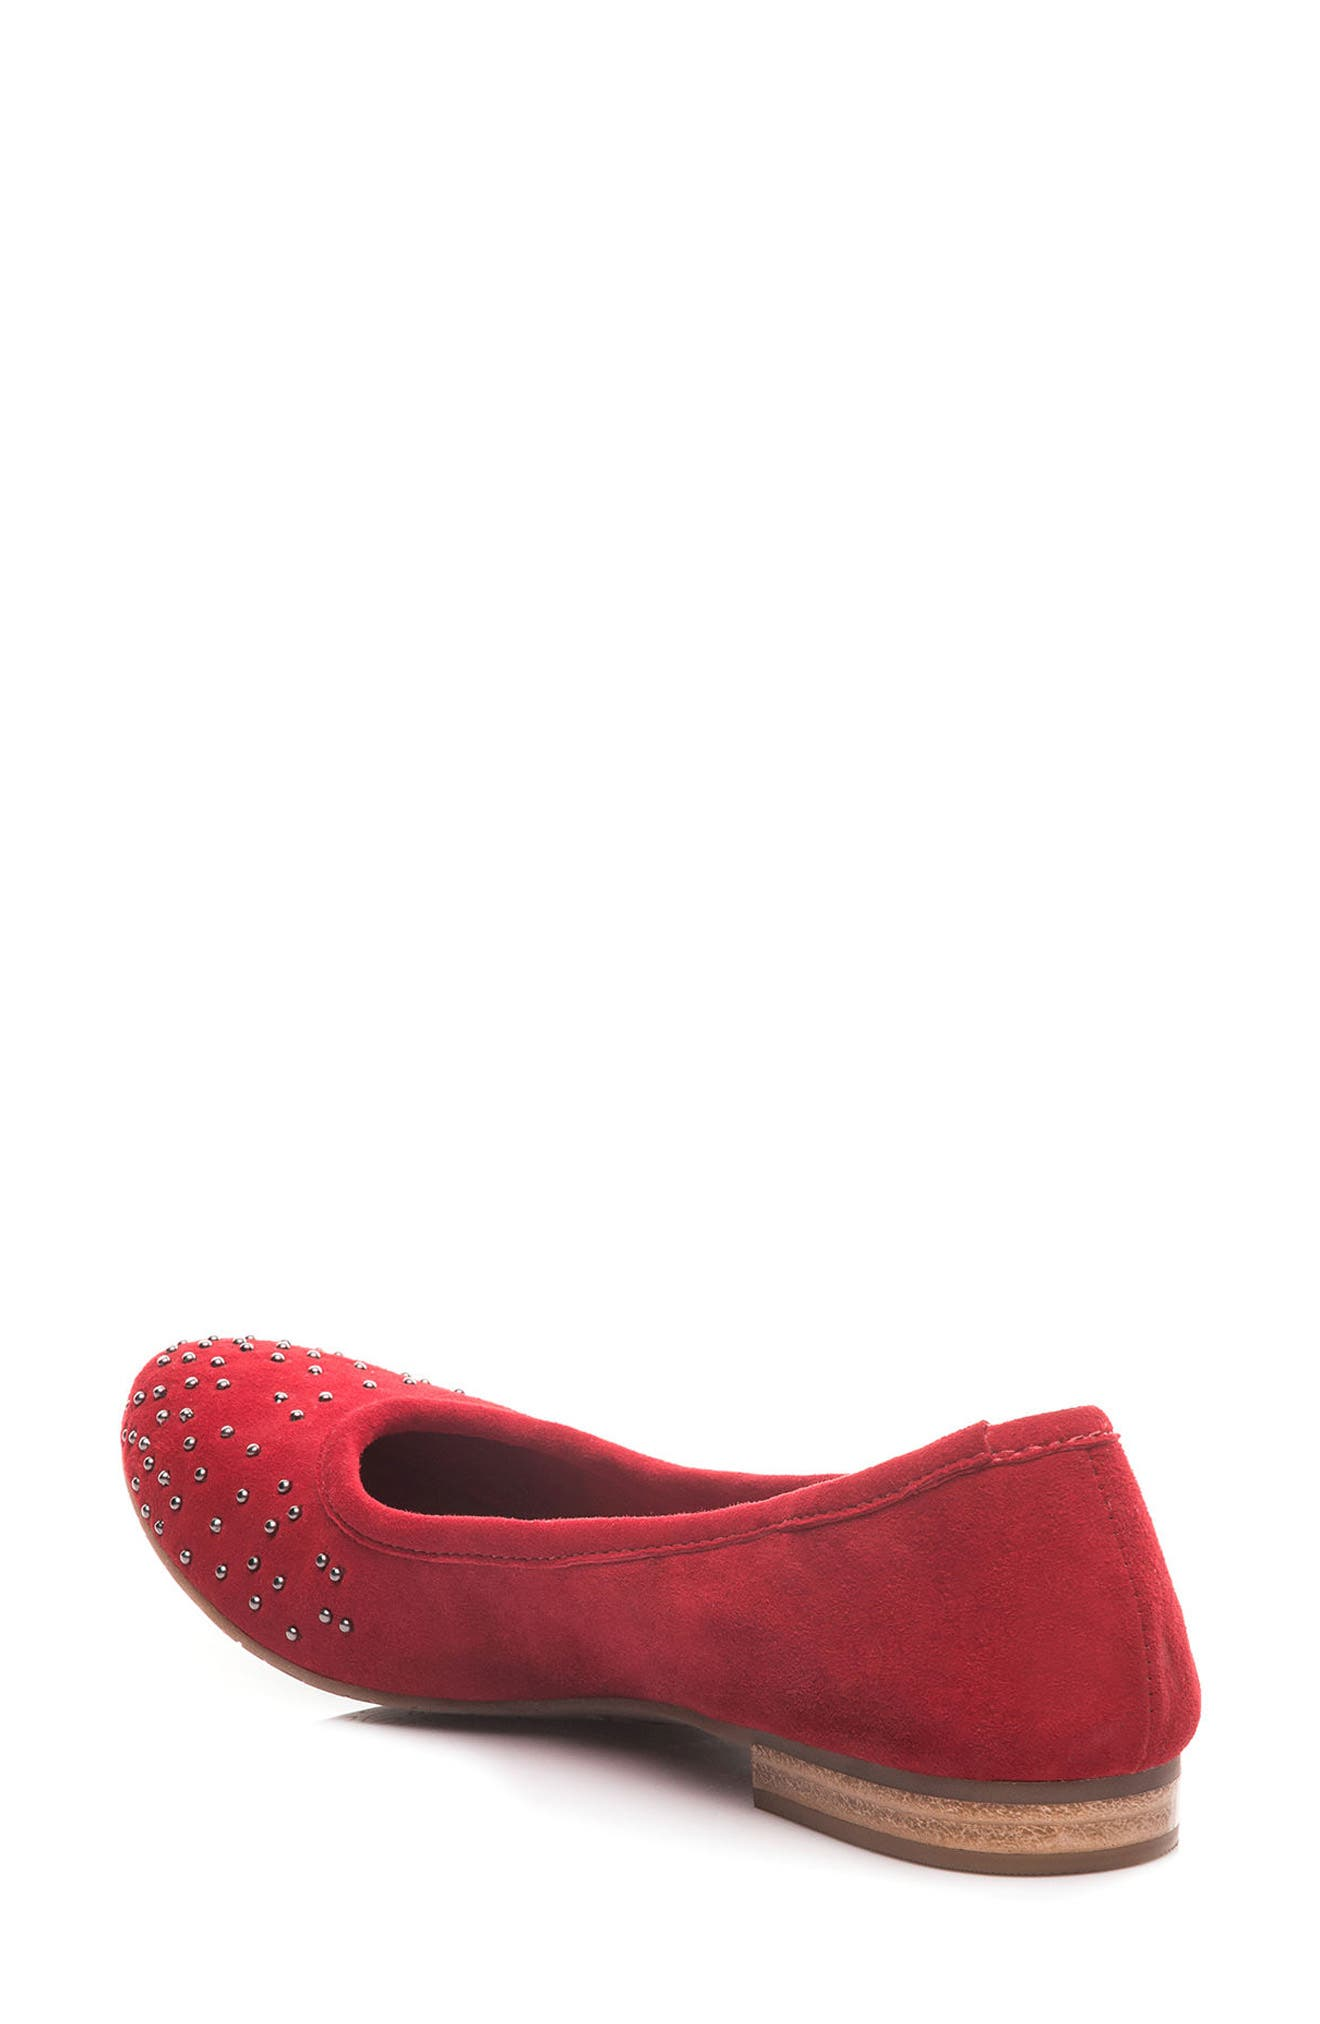 Dallas Studded Flat,                             Alternate thumbnail 2, color,                             Red Suede